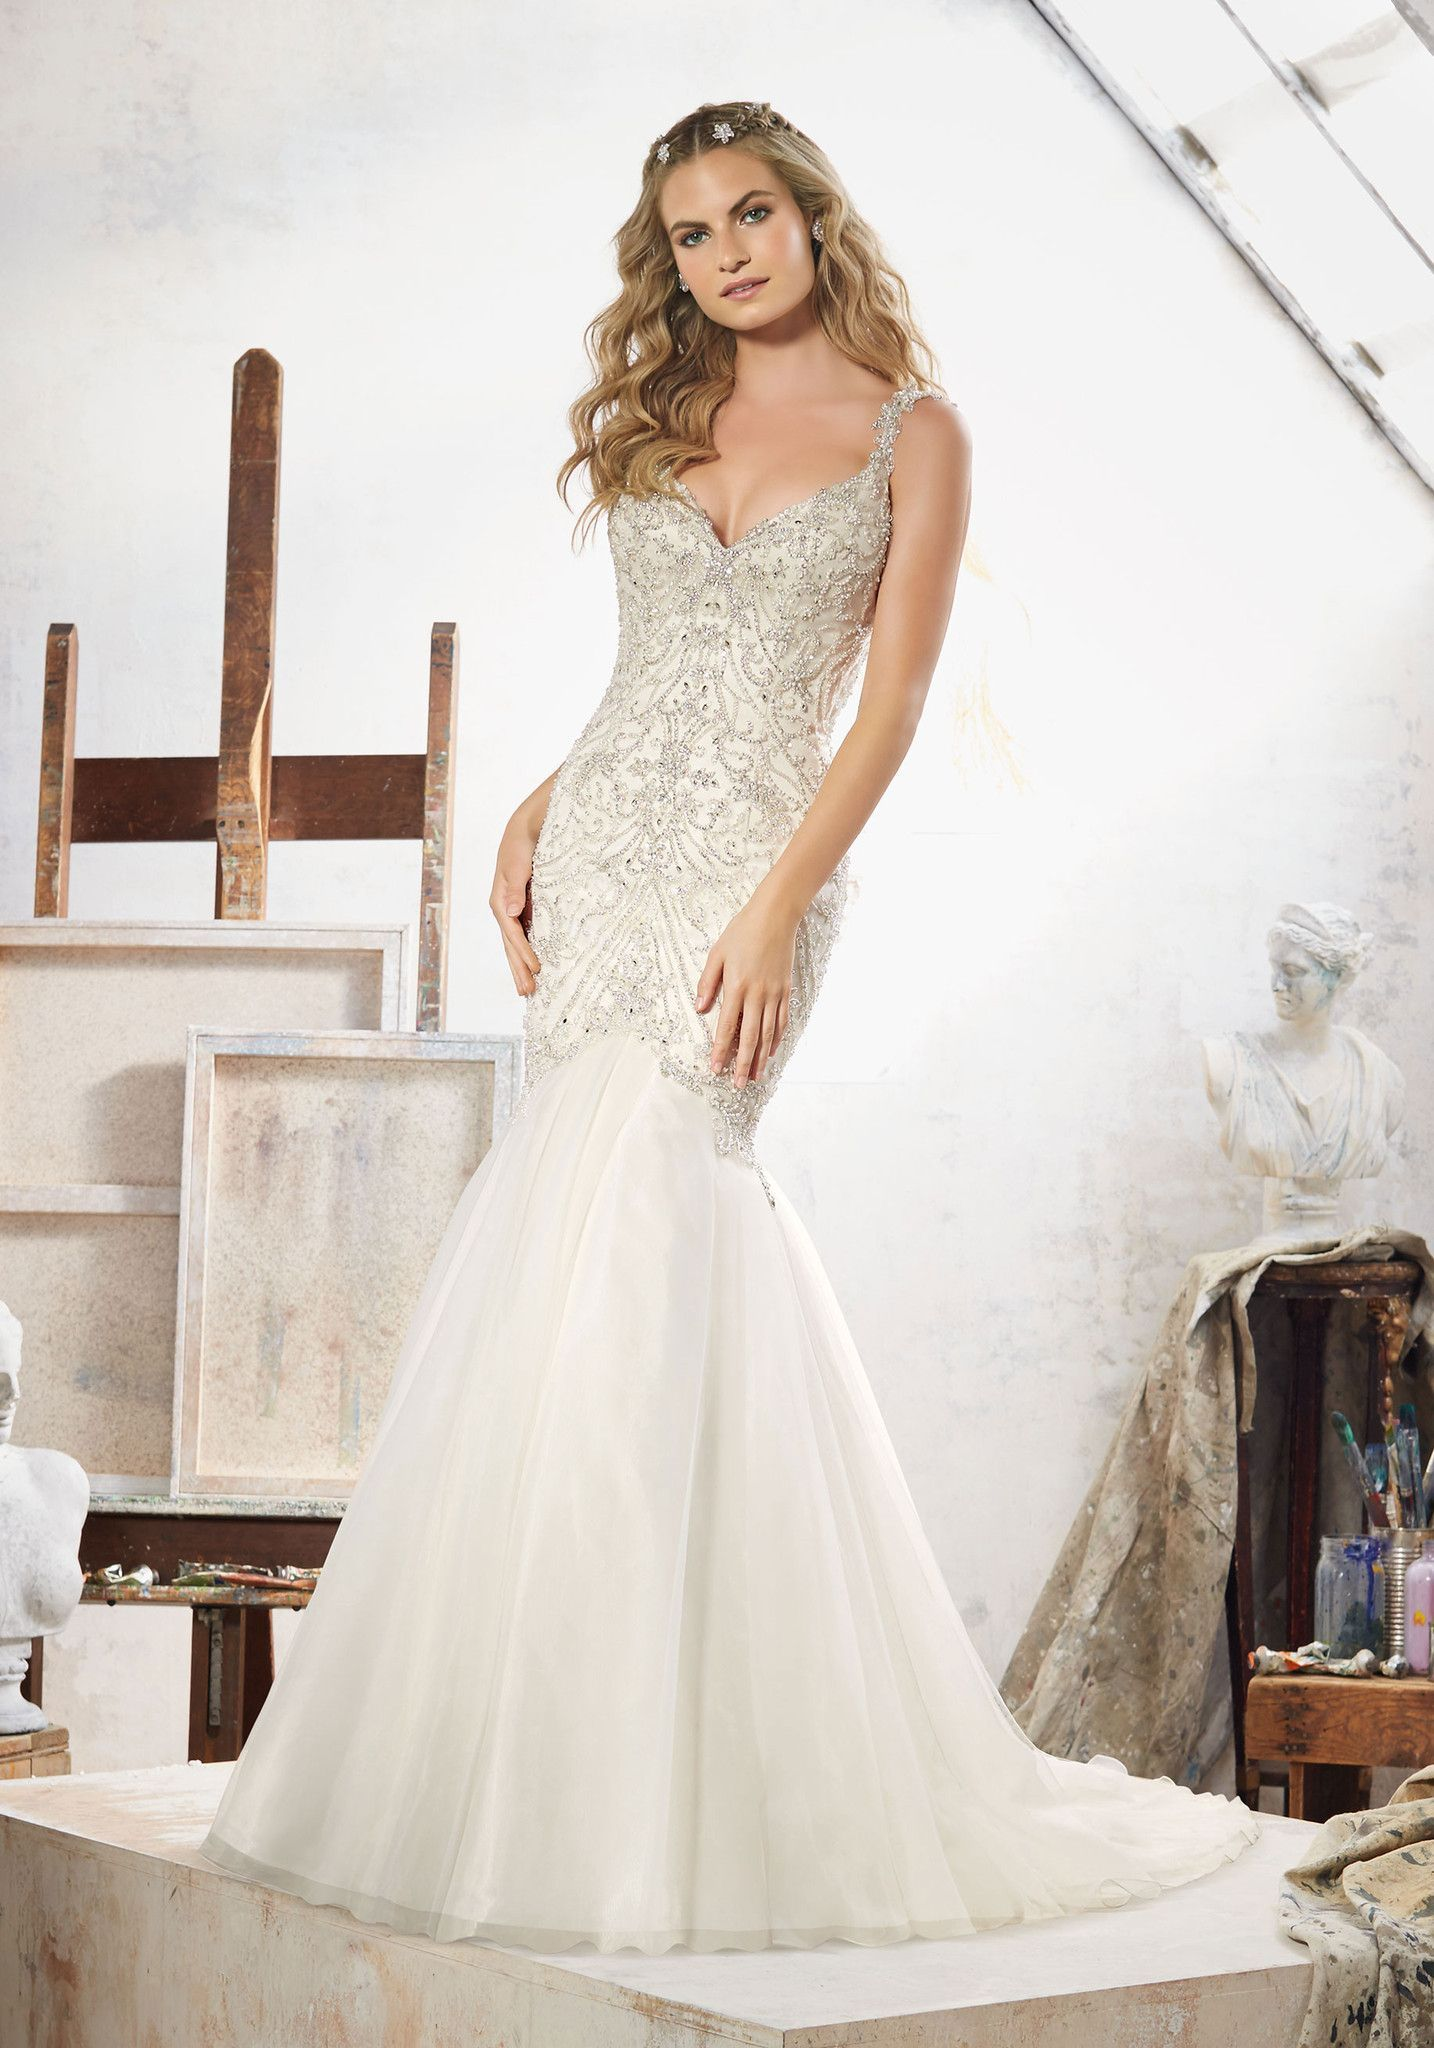 Mori Lee - Maeve - 8107 - All Dressed Up, Bridal Gown